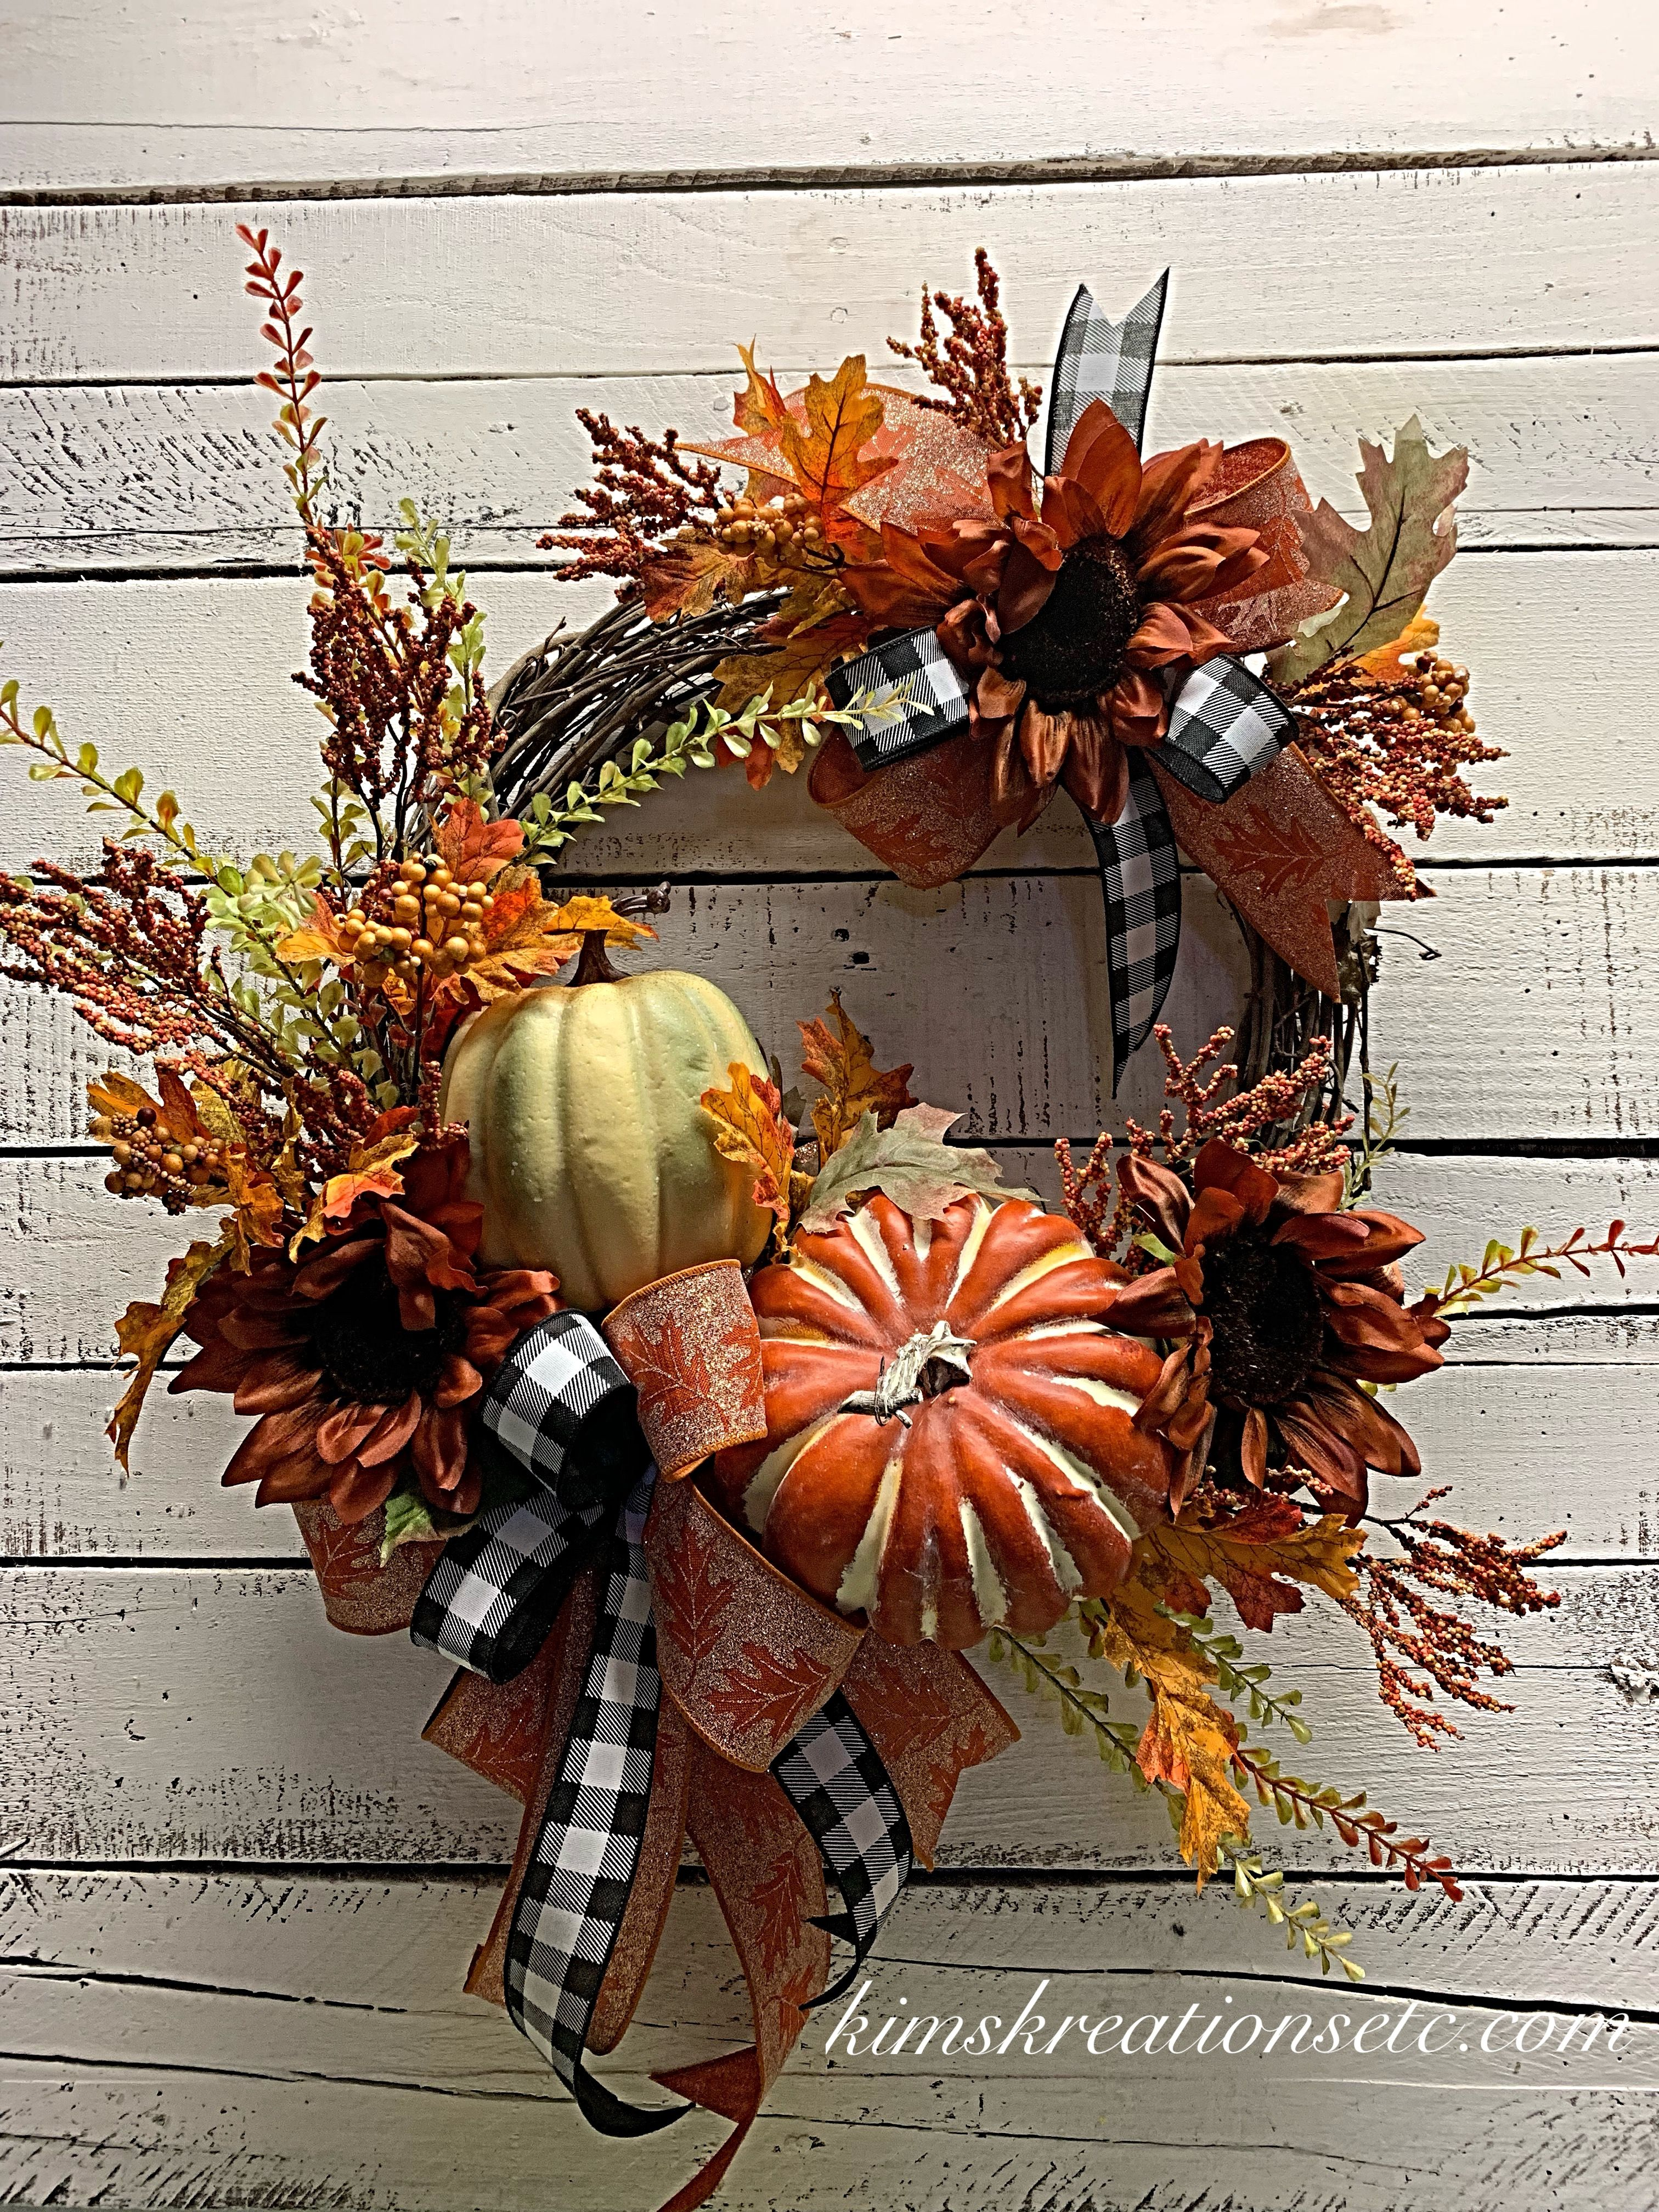 Fall Door Wreath Free Shipping Fall Wreath Fall Pumpkin Wreath Fall Wreath For Front Door Fall Leaves And Pumpkins Autumn Wreath Traditional Fall Door Wr Door Wreaths Fall Wreaths For Sale